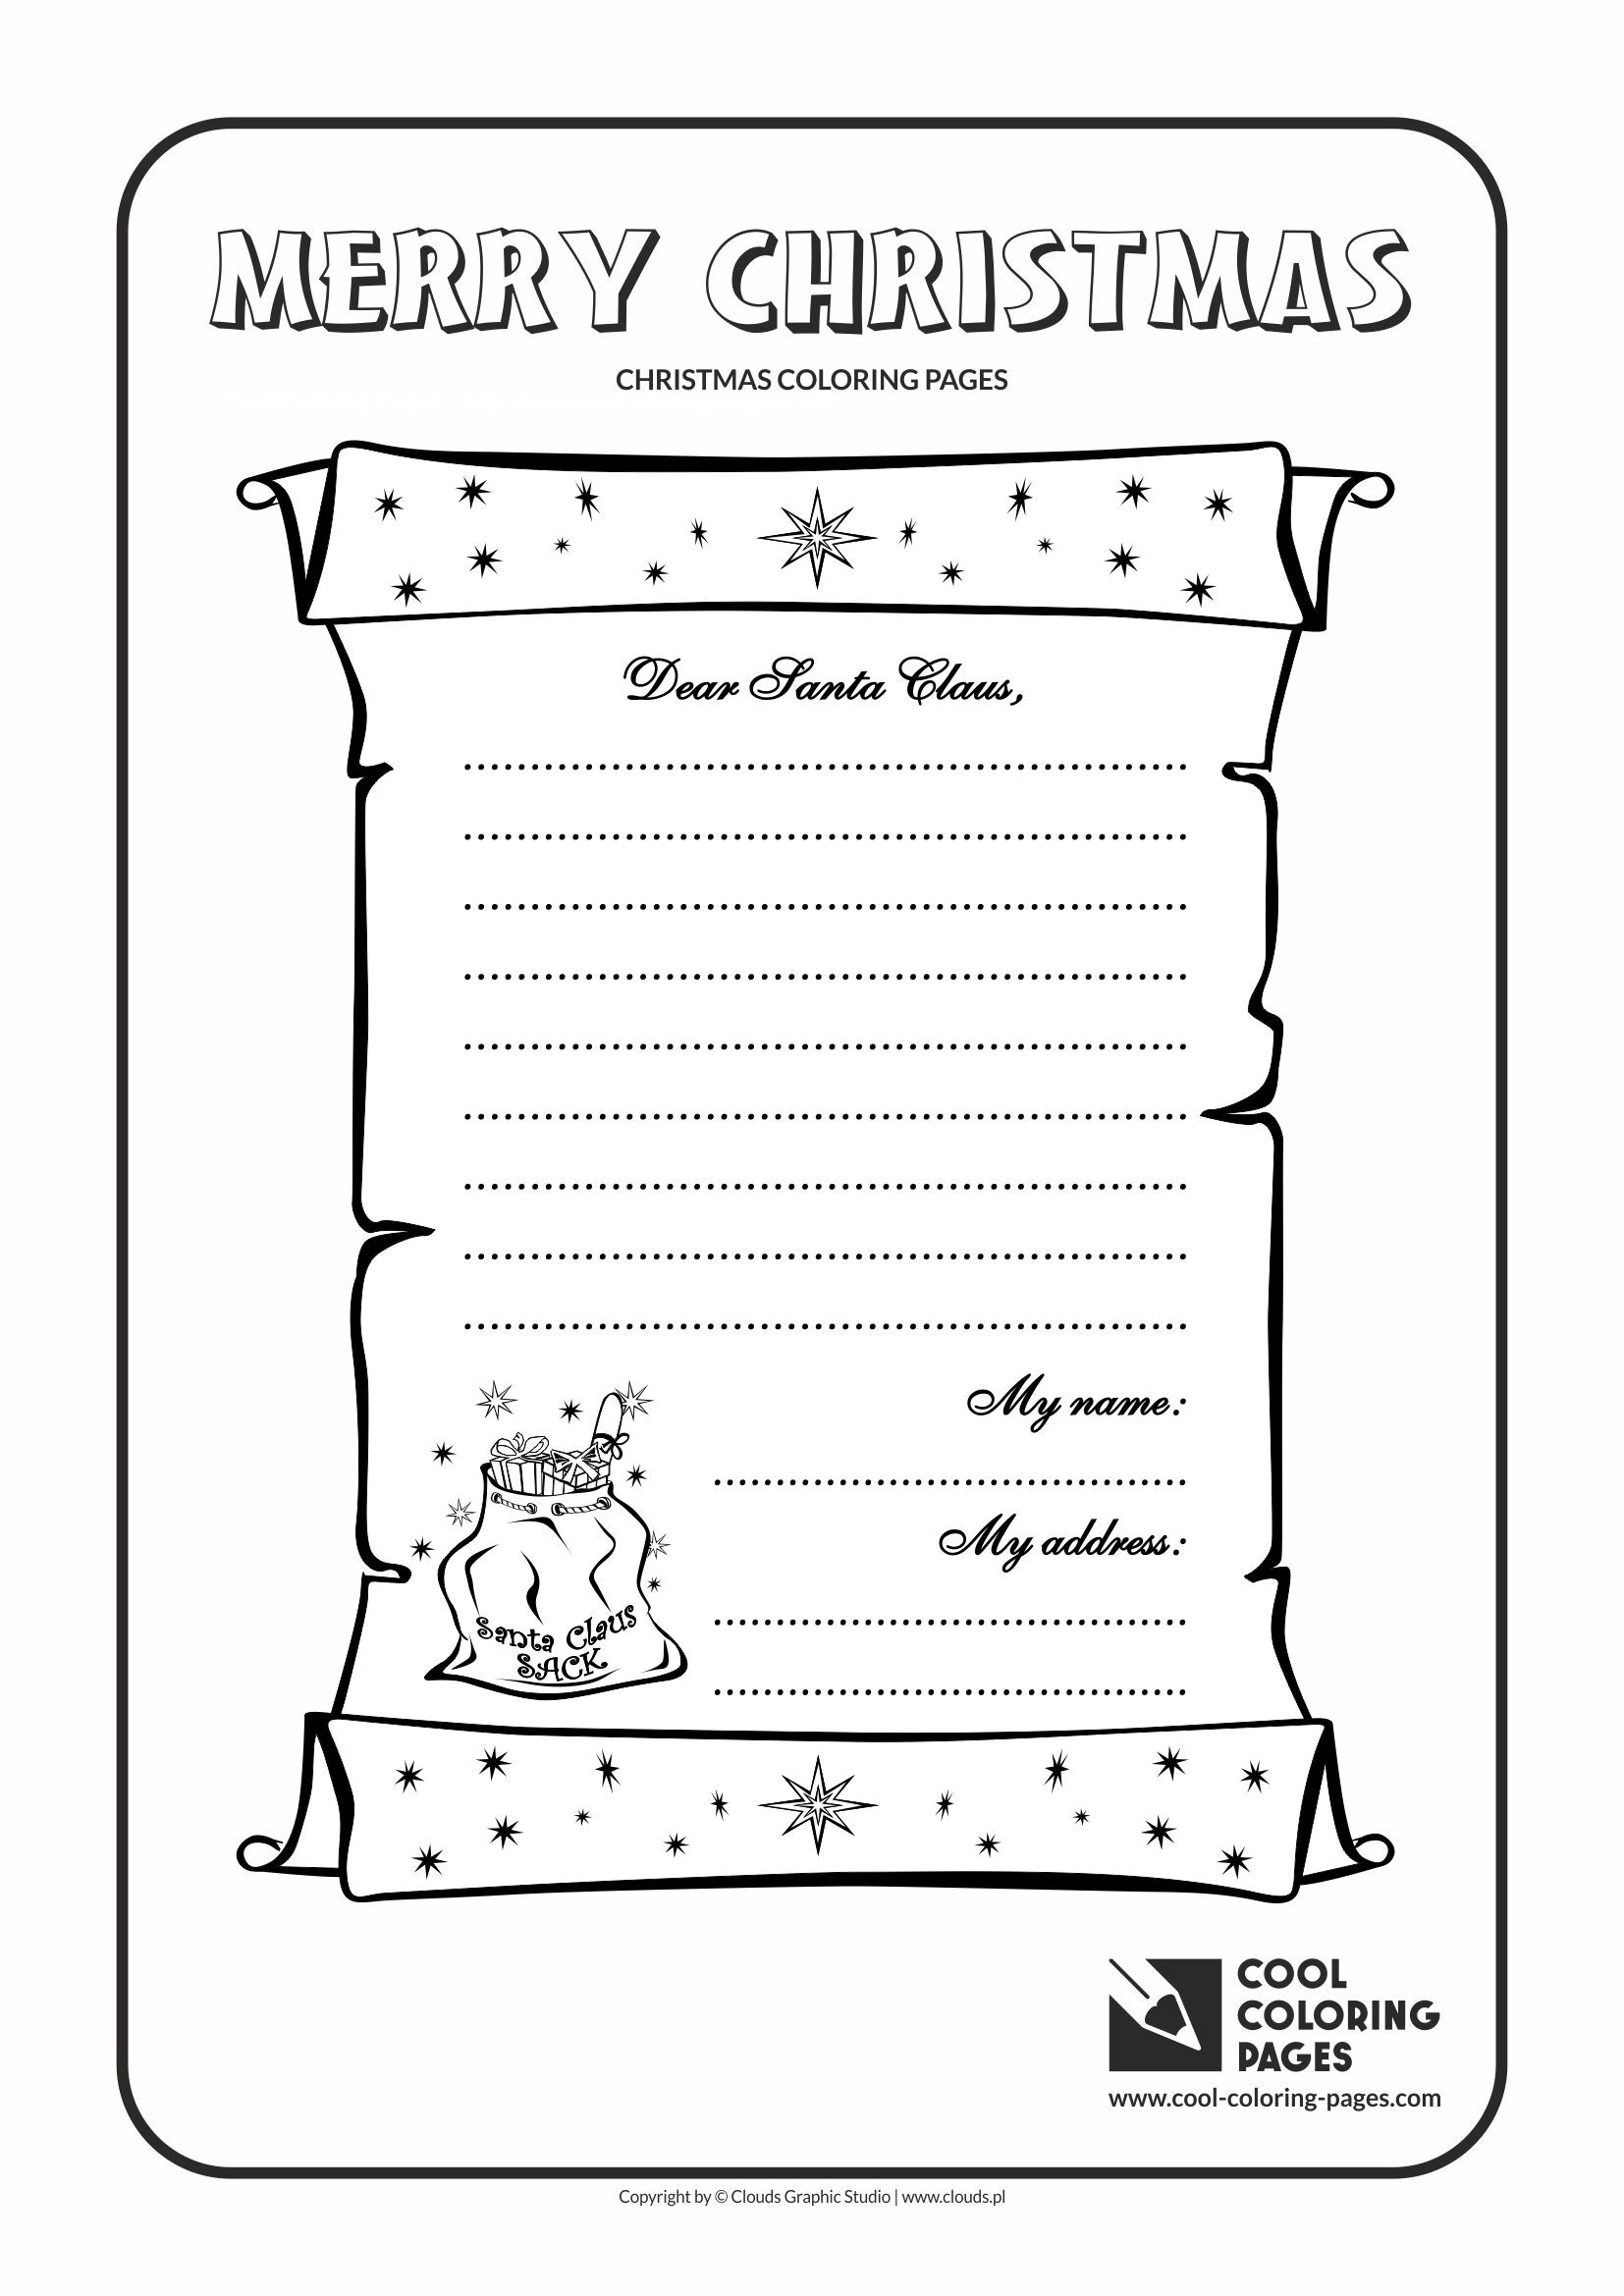 Christmas Coloring Letters With To Santa Save Cool Pages